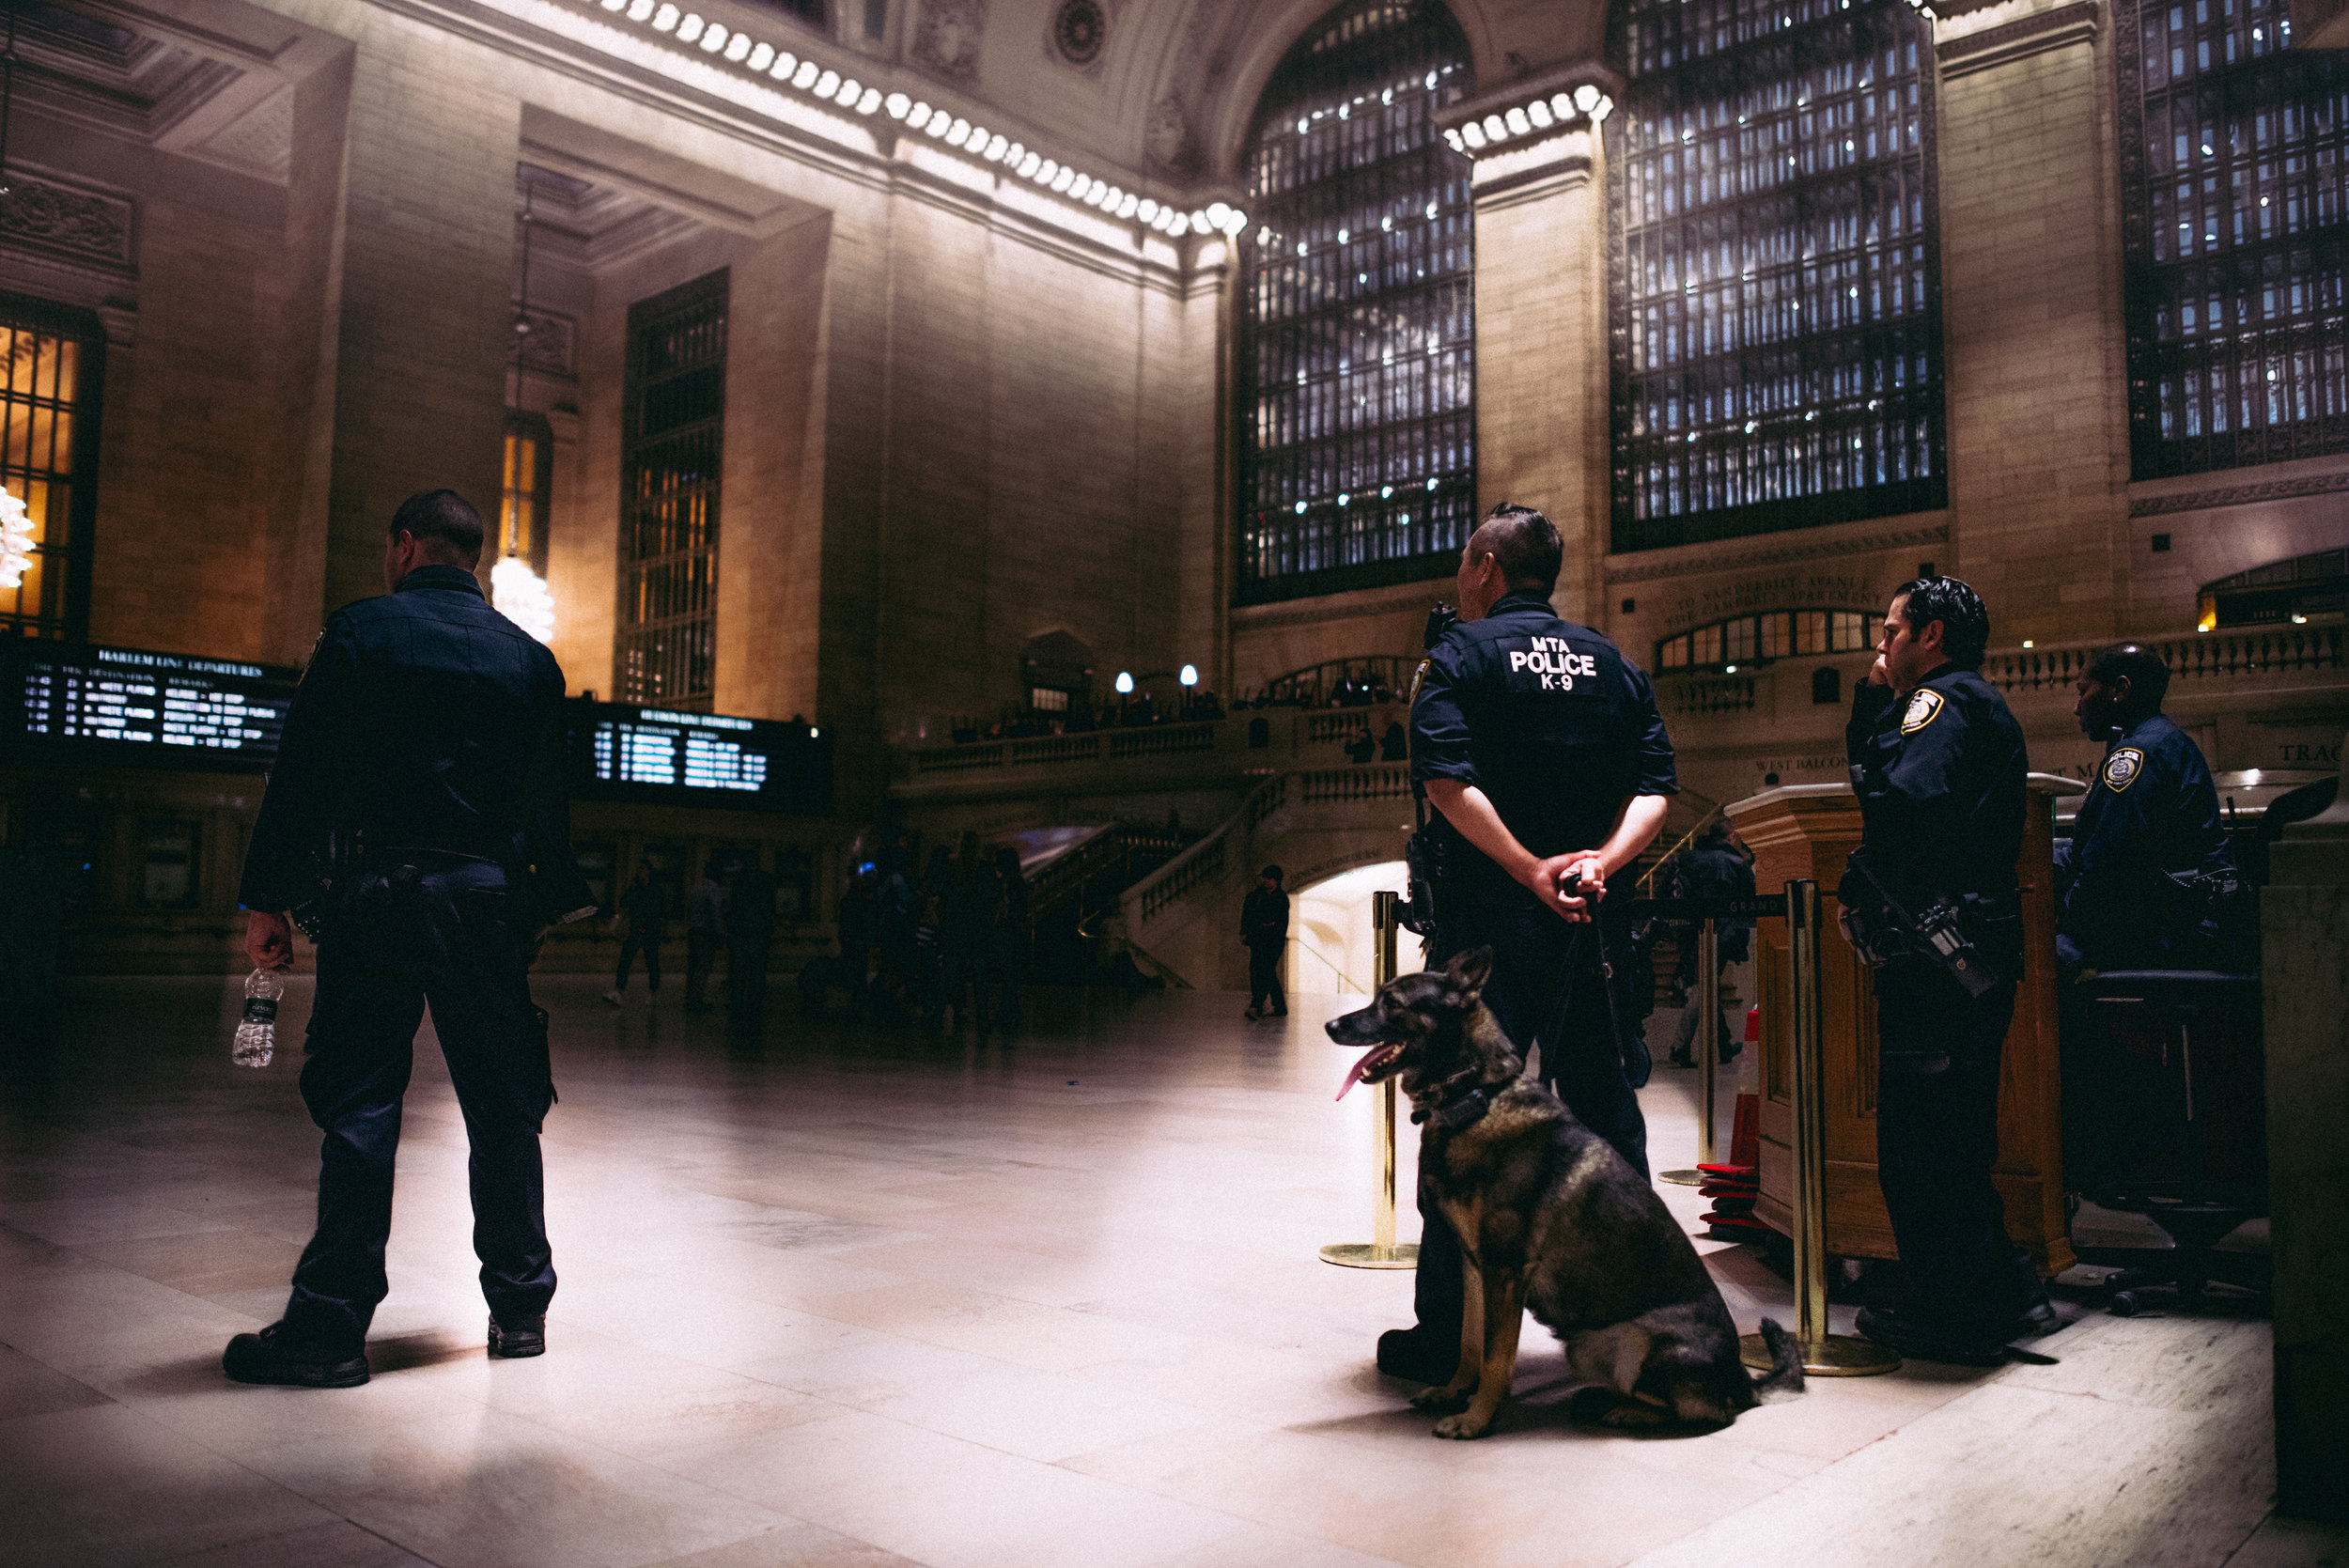 THANK YOU  Law Enforcement in their natural habitat inside the busiest train station in the USA; Grand Central Terminal. 750,000 people pass through Grand Central daily and over 1,000,000 people during the holidays